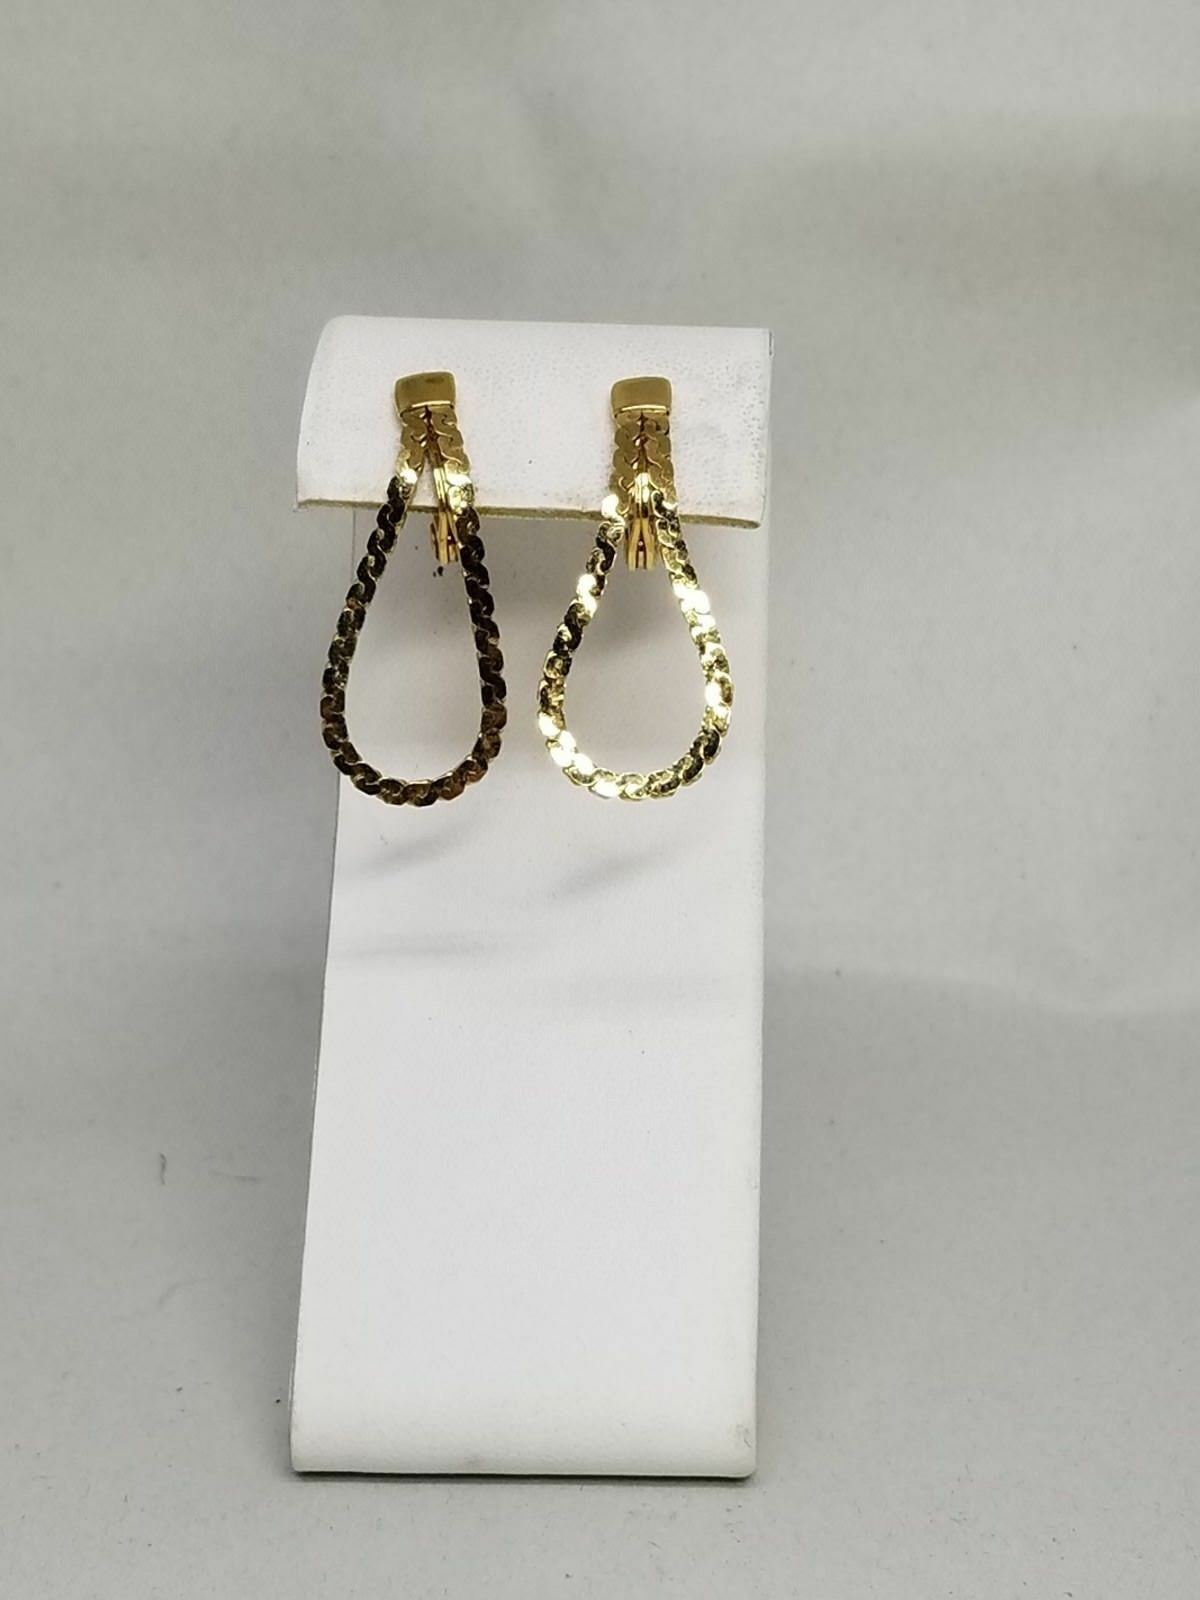 Monet Vintage Gold Tone Chain Loop Clip On Earrings